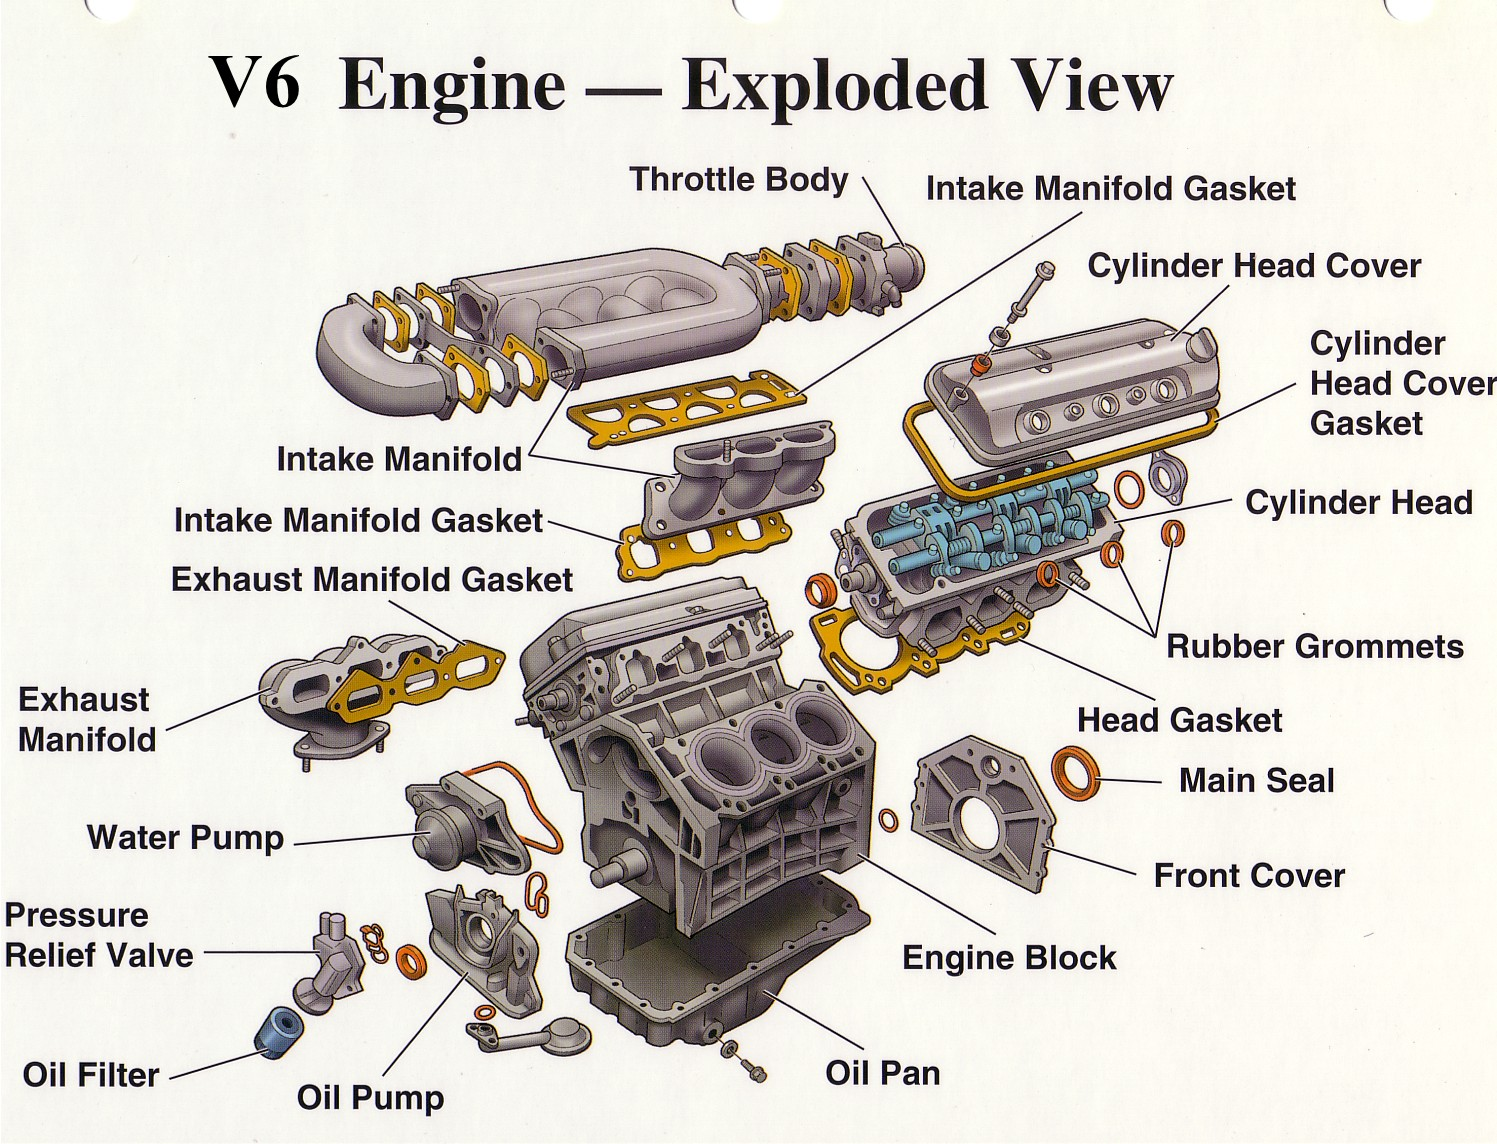 Engine Parts (Exploded View) - Electrical Blog